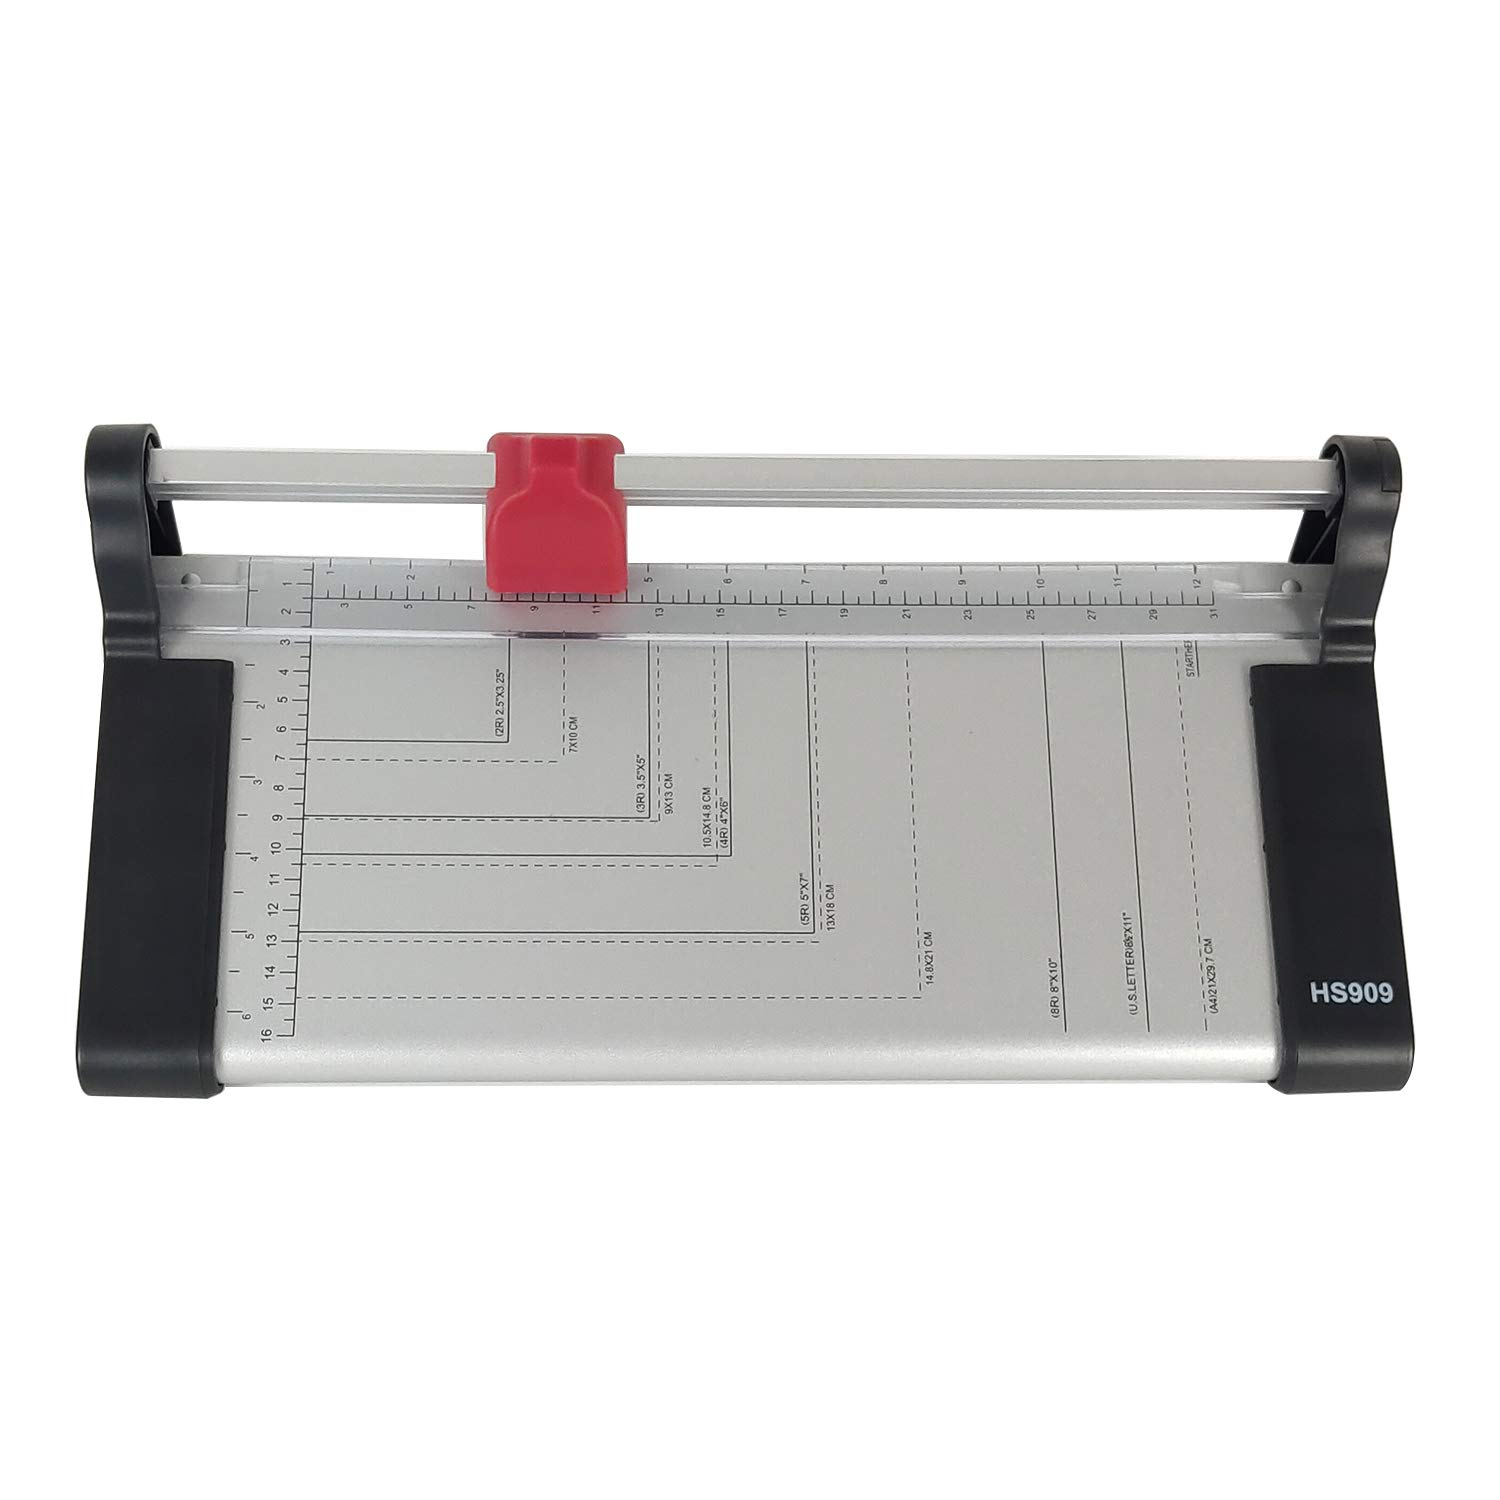 HS909A4 10312057 12 2inch Guillotine Capacity Straight